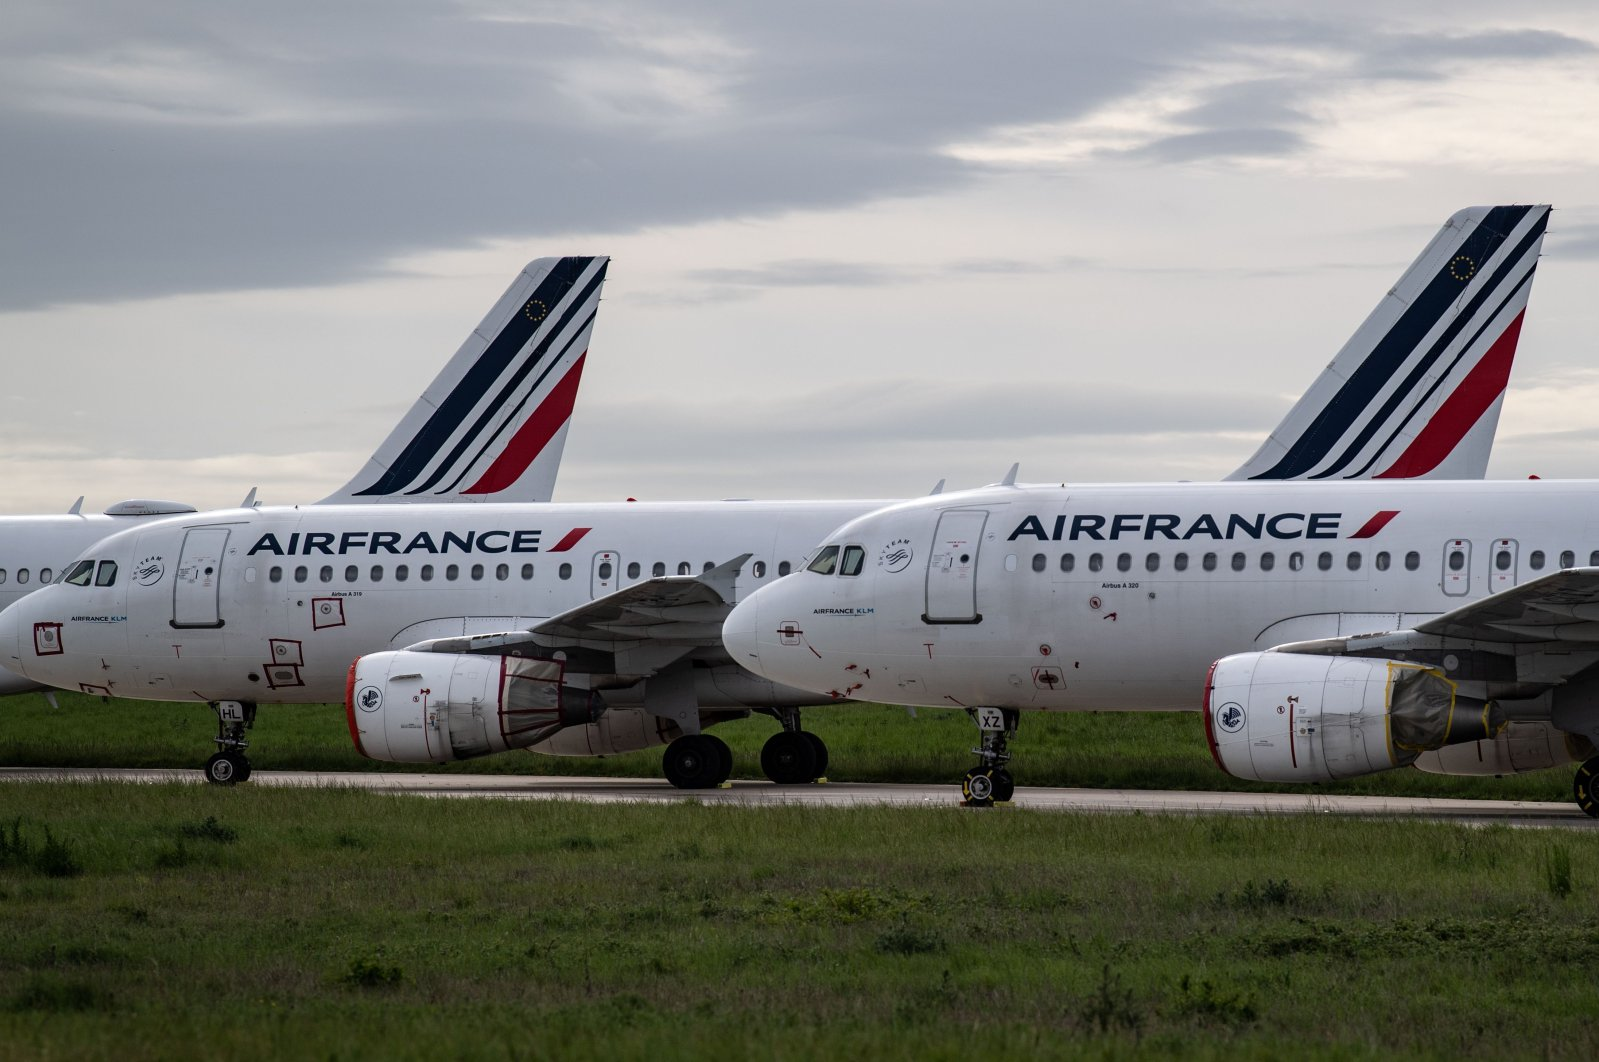 Air France planes parked on the tarmac at Paris Charles de Gaulle Airport in Roissy during the coronavirus outbreak, Paris, France, April 30, 2020. (AFP Photo)